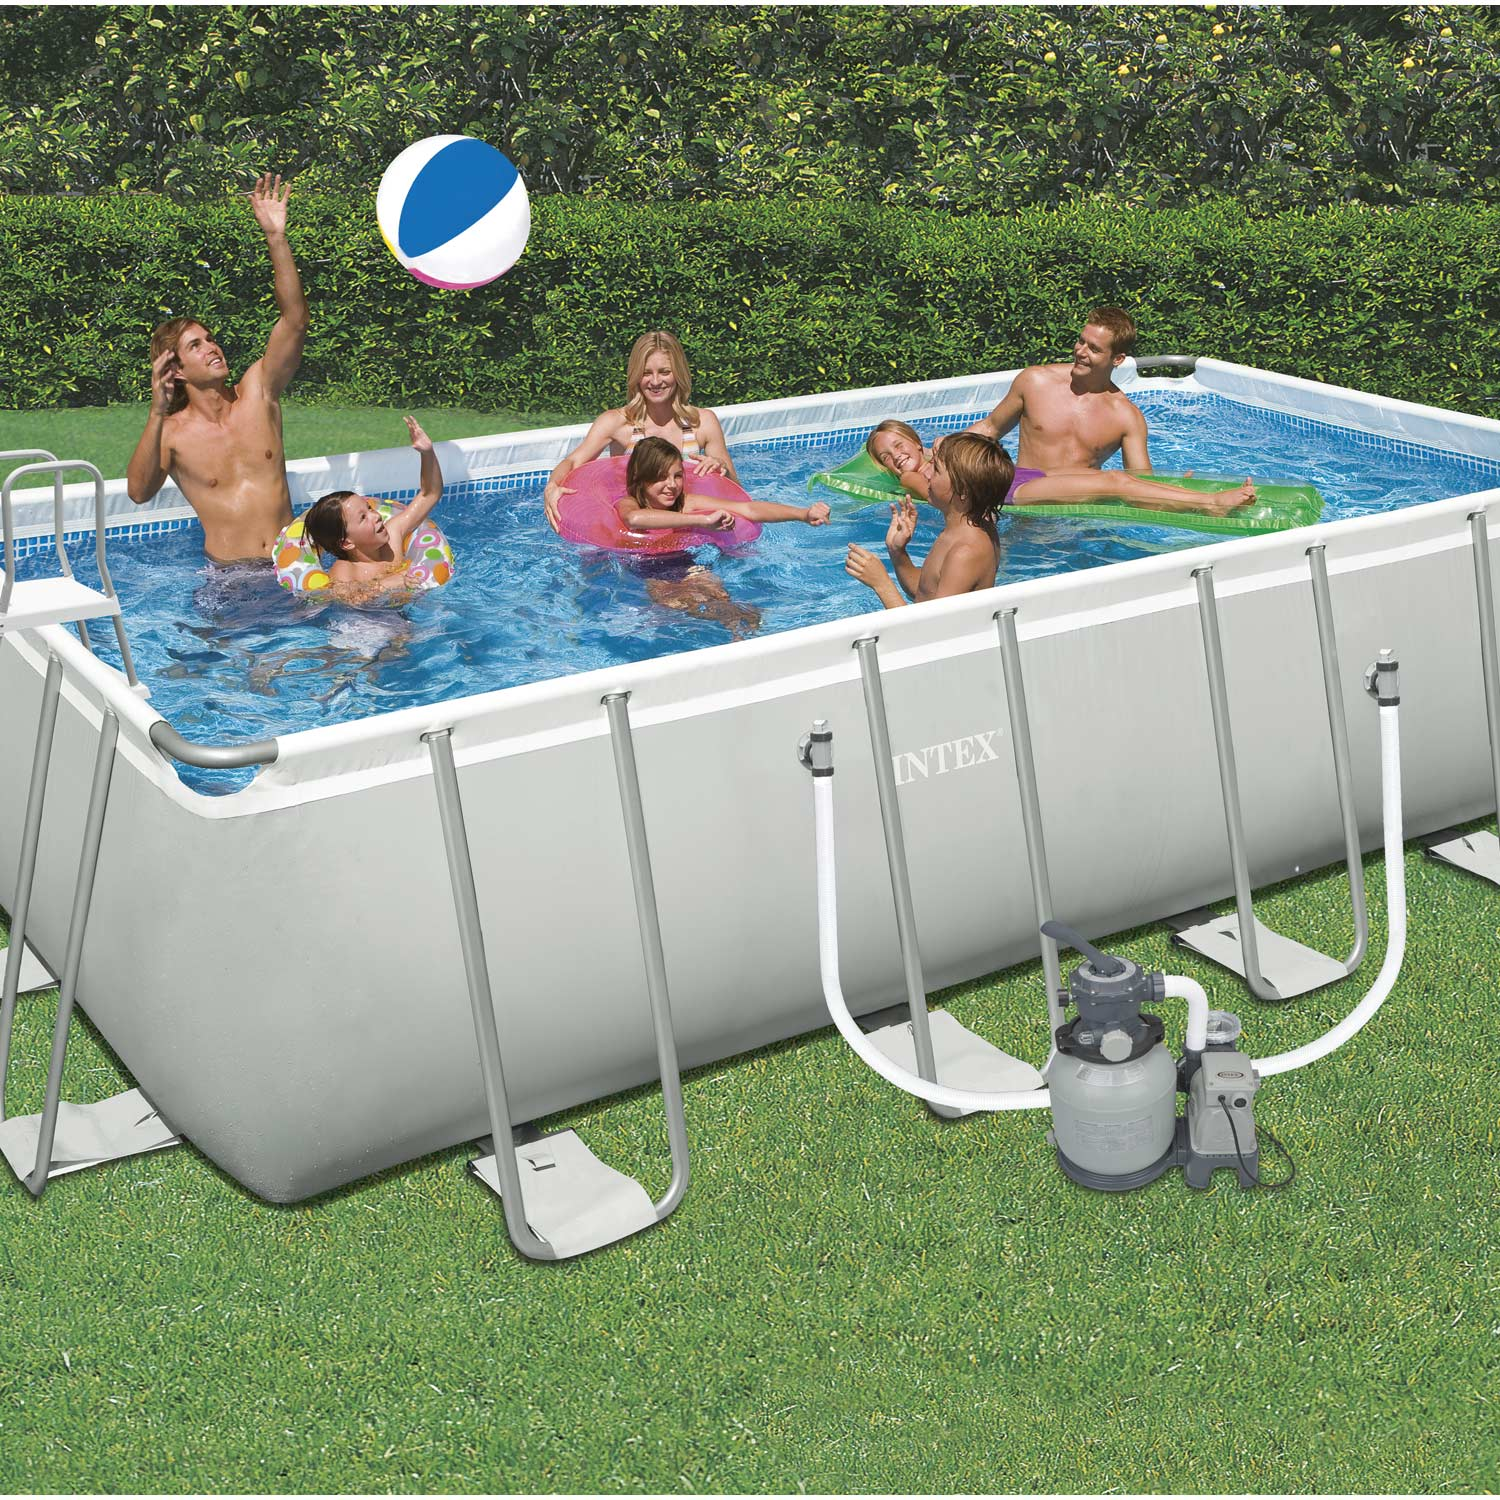 Piscine hors sol autoportante tubulaire intex l x l for Piece de piscine hors sol